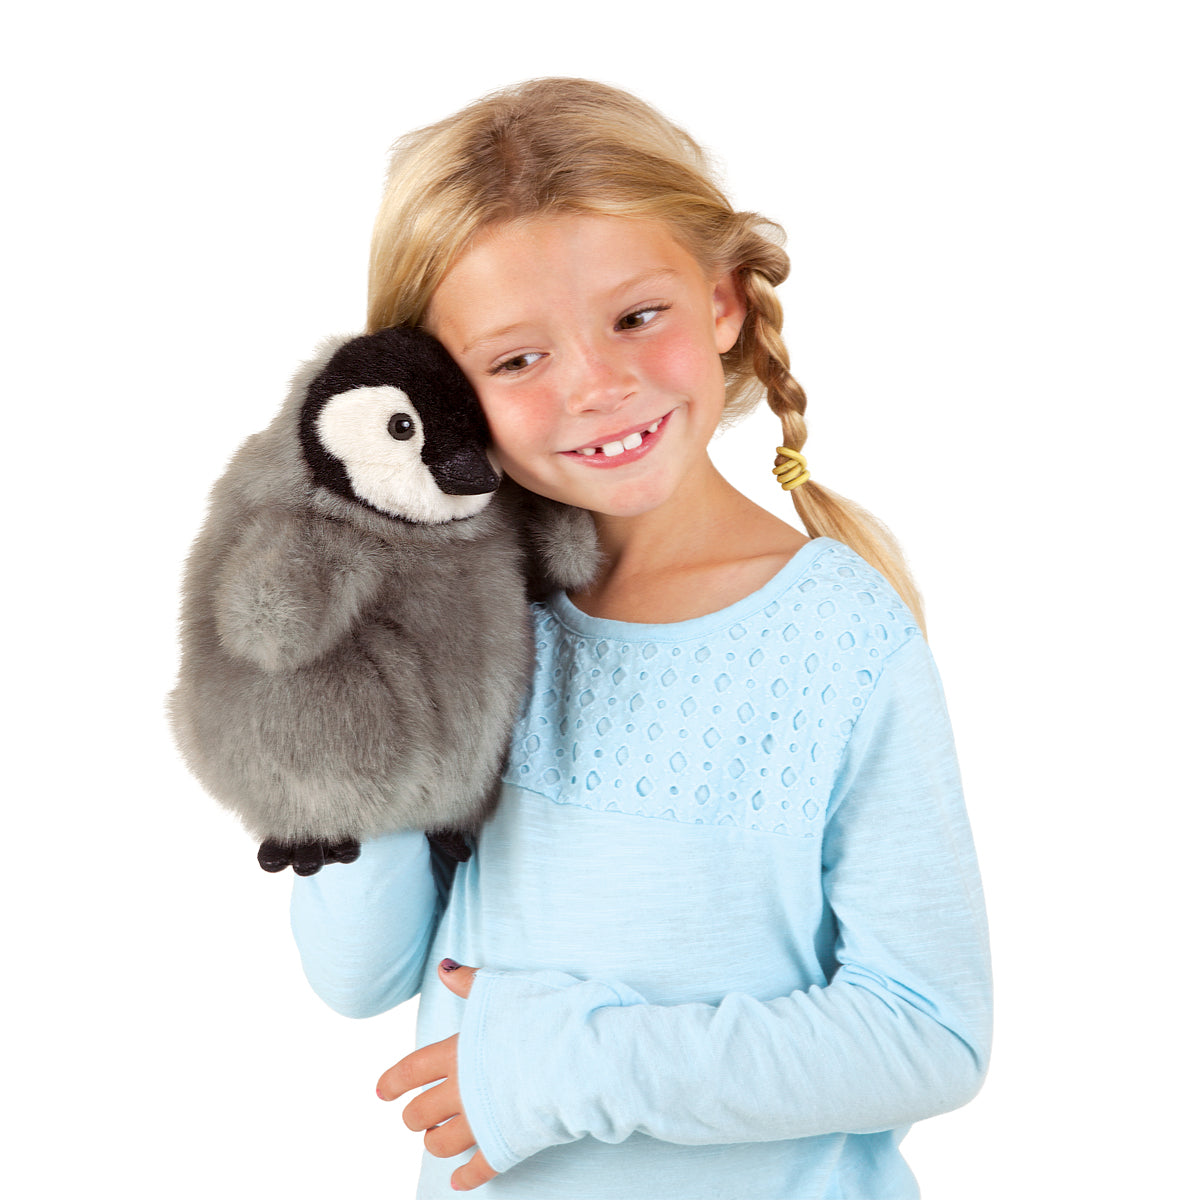 a smiling girl with blonde braids holding a plush baby emperor penguin puppet next to her face